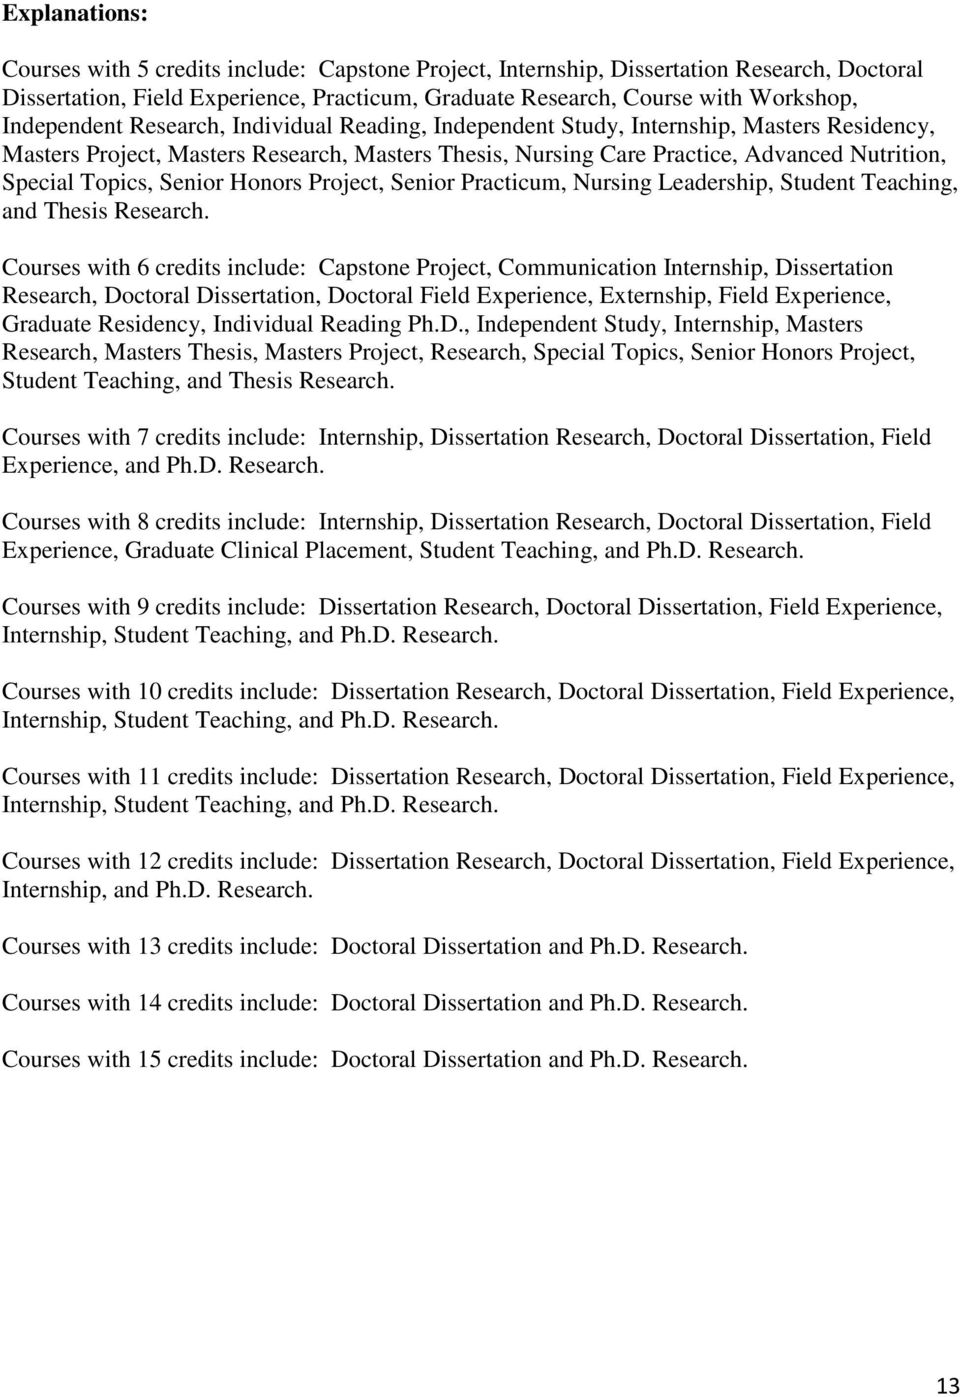 Doctoral dissertation research experience